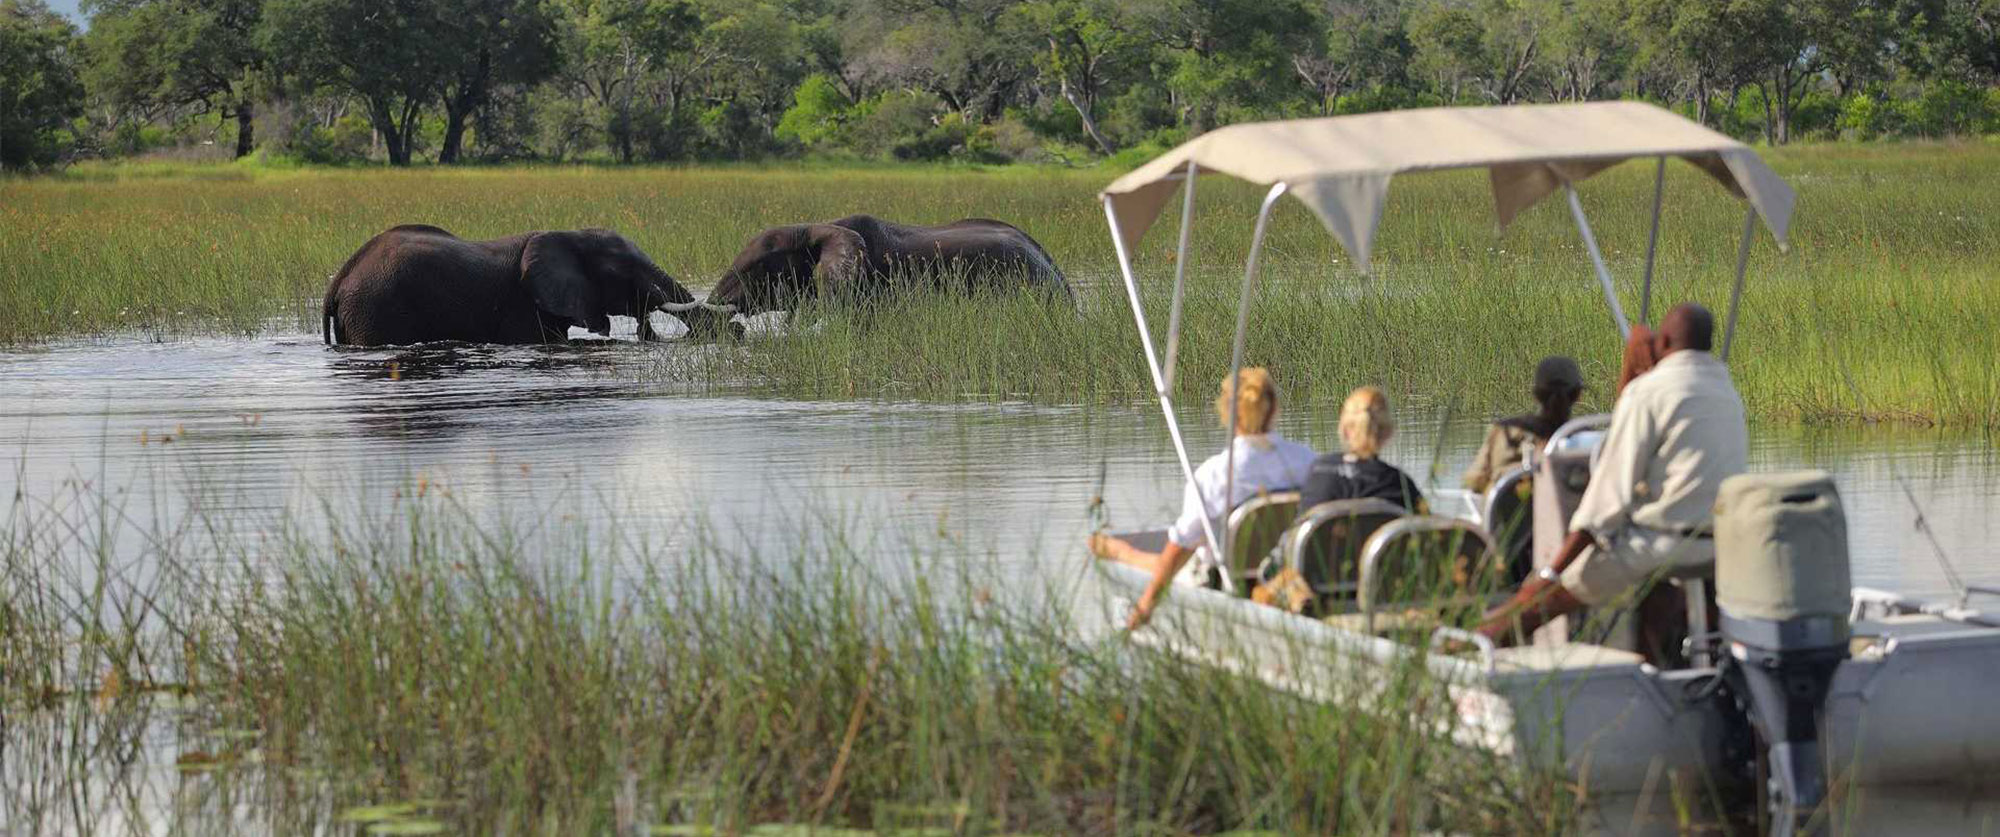 &Beyond Xudum Okavango Delta Lodge - Luxury African Safari Travel Package